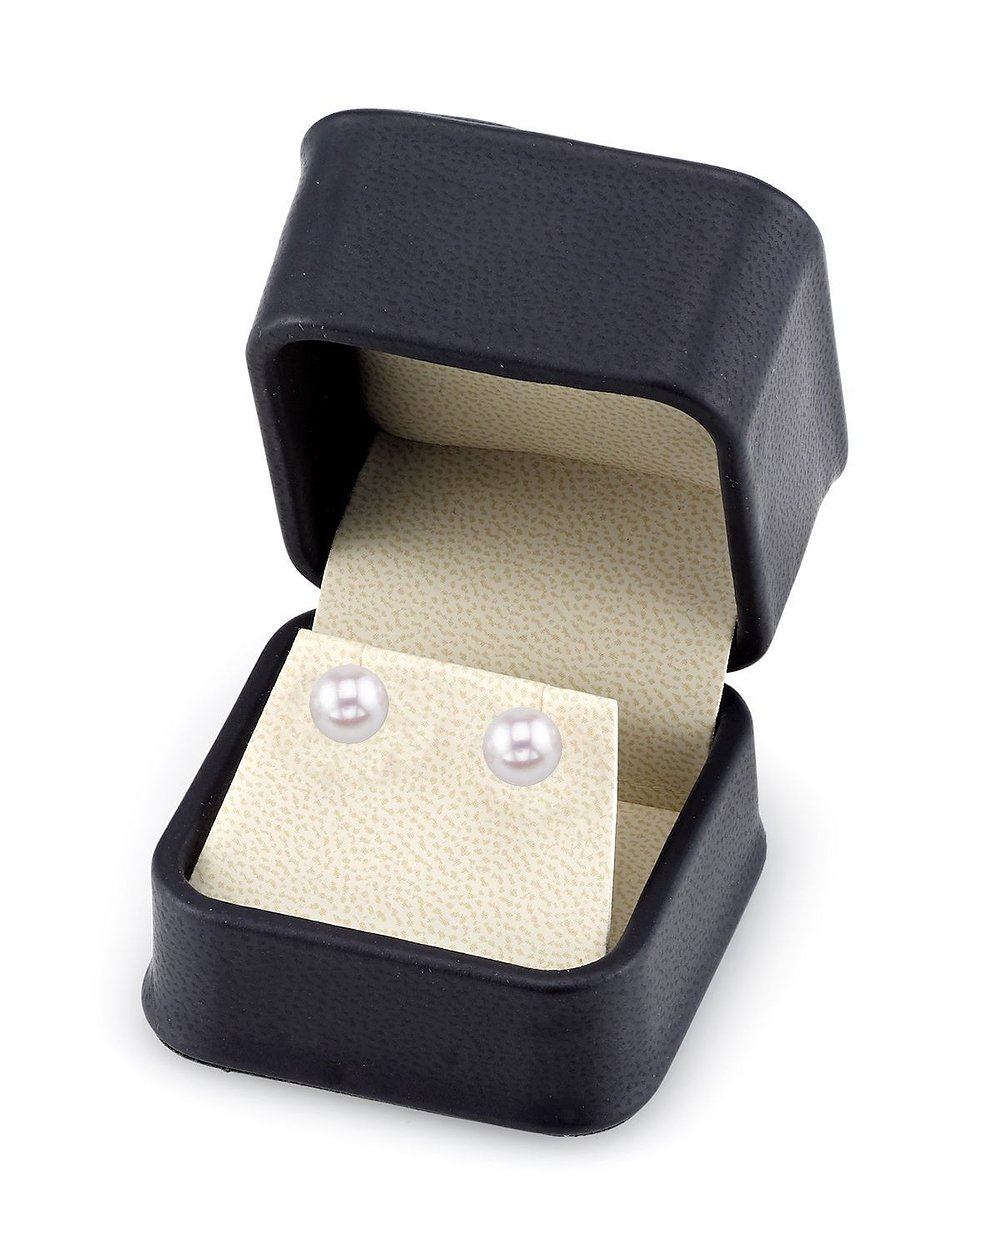 THE PEARL SOURCE 14K Gold 8-8.5mm Hanadama Quality Round White Akoya Cultured Pearl Stud Earrings for Women by The Pearl Source (Image #3)